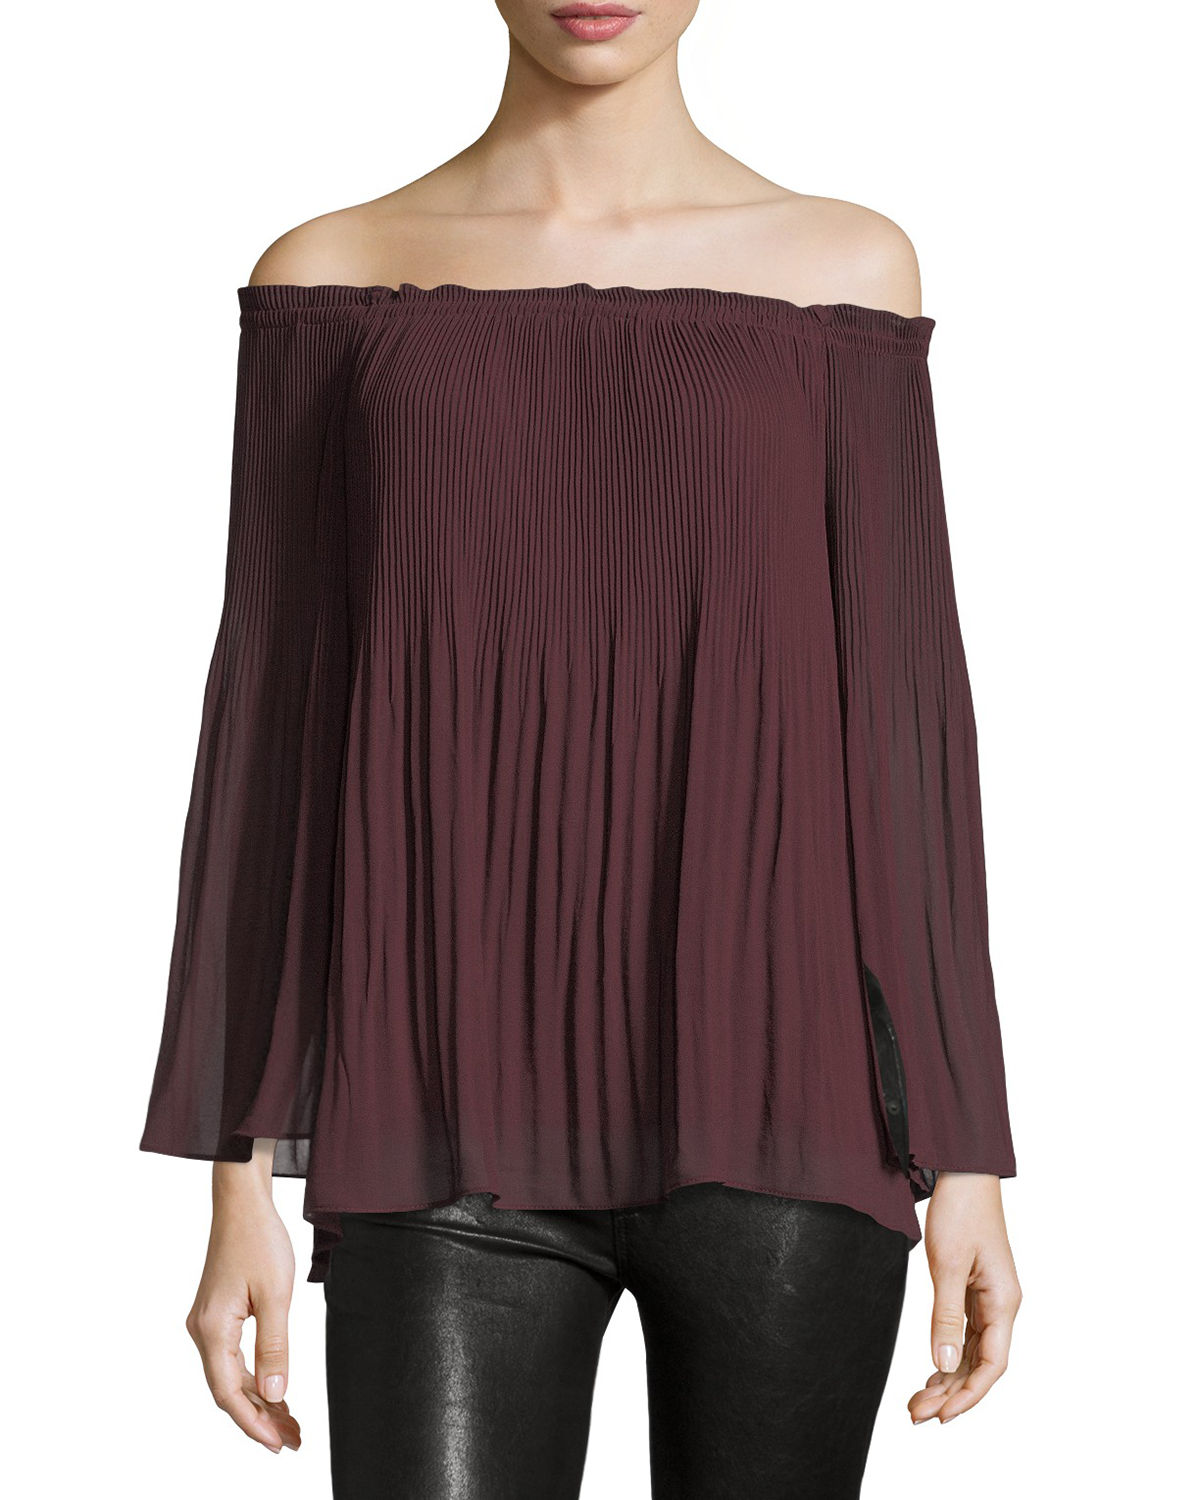 42e9a016dd5 Neiman Marcus Last Call (Neiman Marcus) – Off-the-Shoulder Georgette Blouse  –  62.00